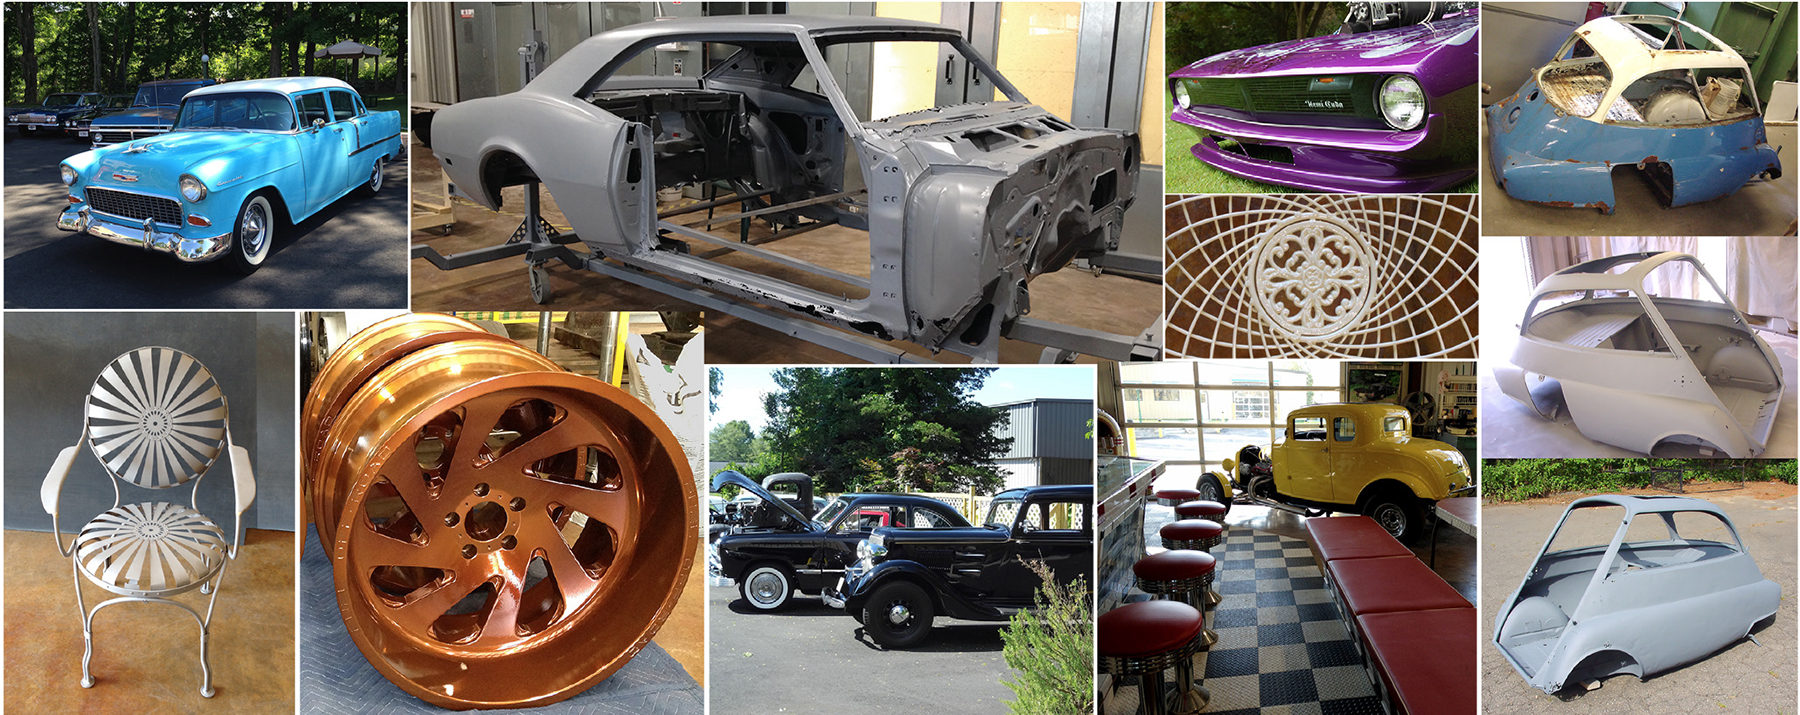 collage of New England Dry Stripping components and autos with blasting and powder coating